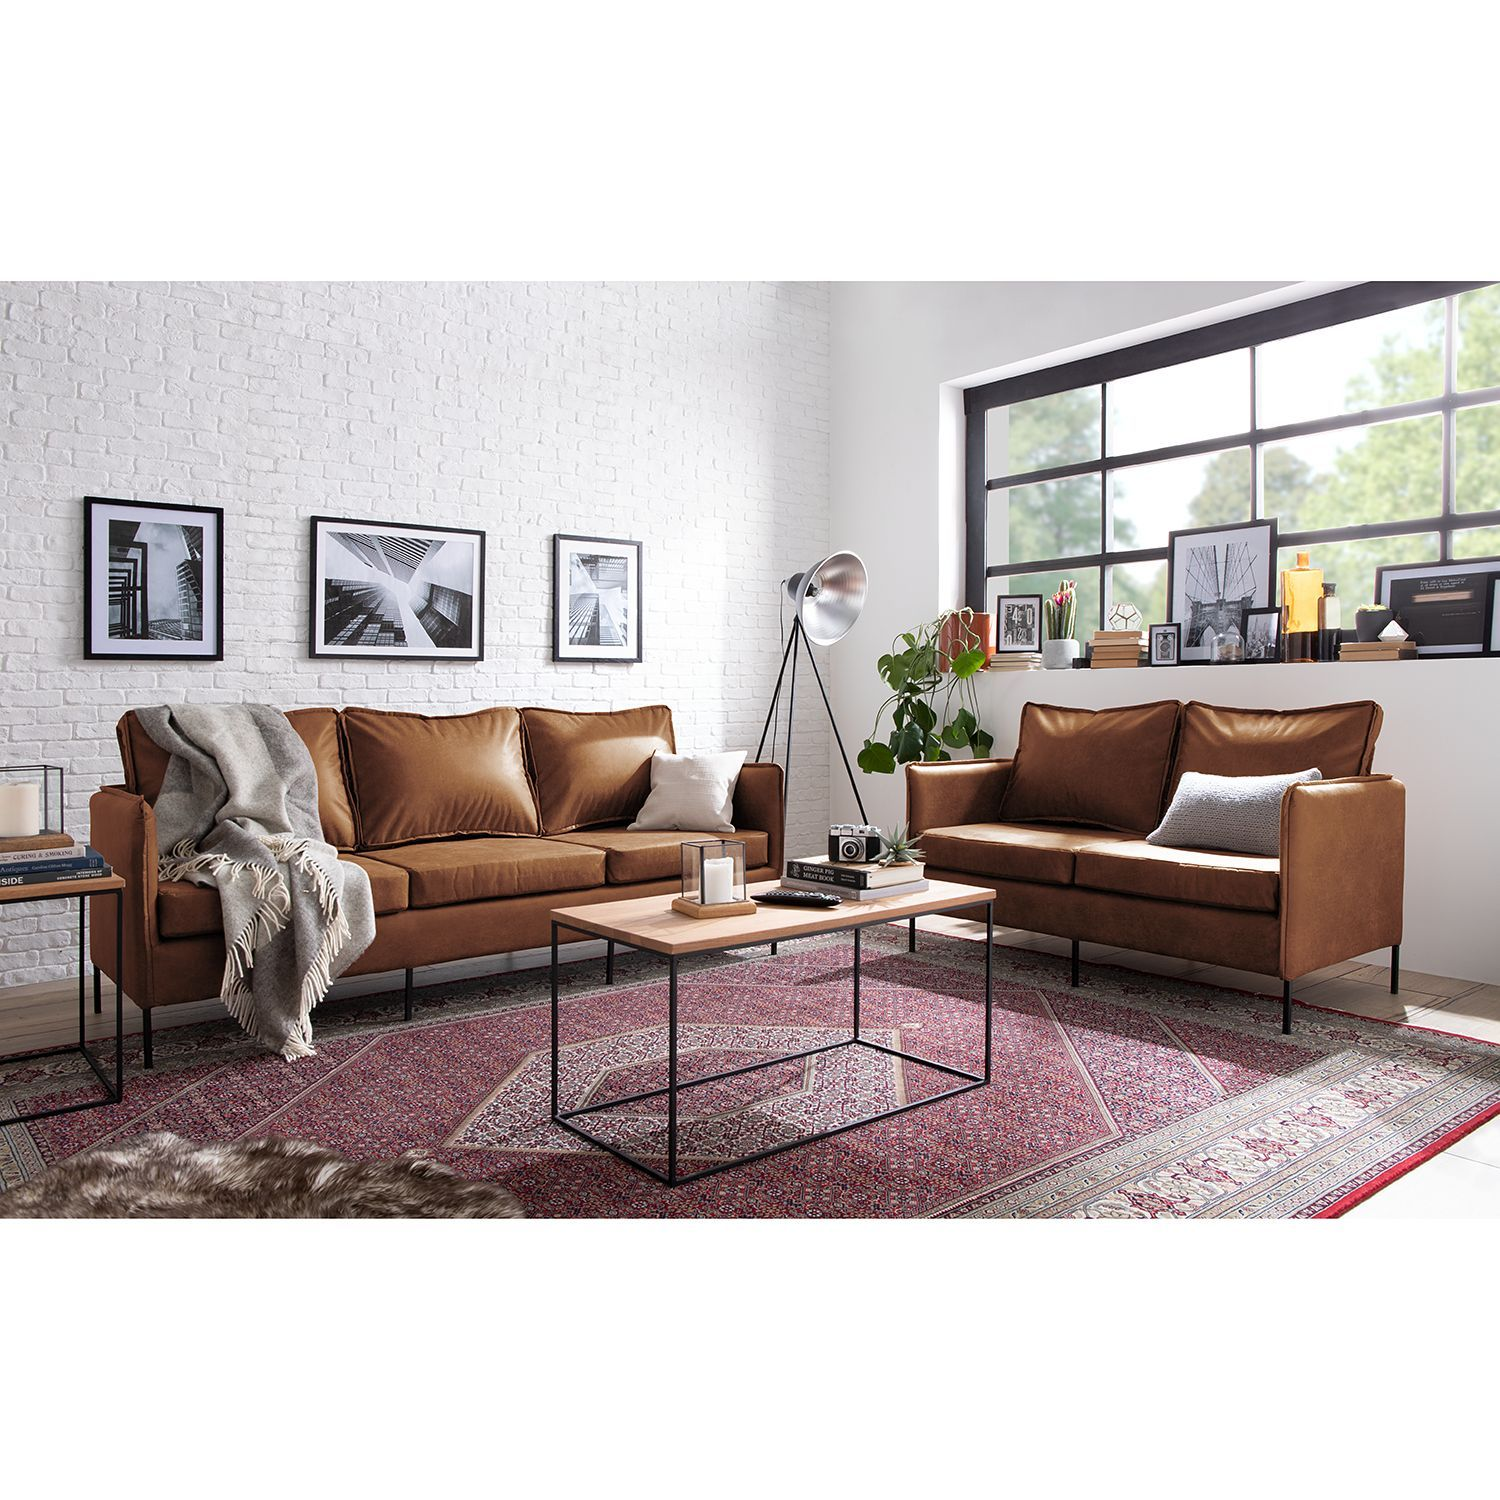 Sofa Southwell 2 Sitzer Sofas Mobel Sofa Und Sofa Mit Relaxfunktion